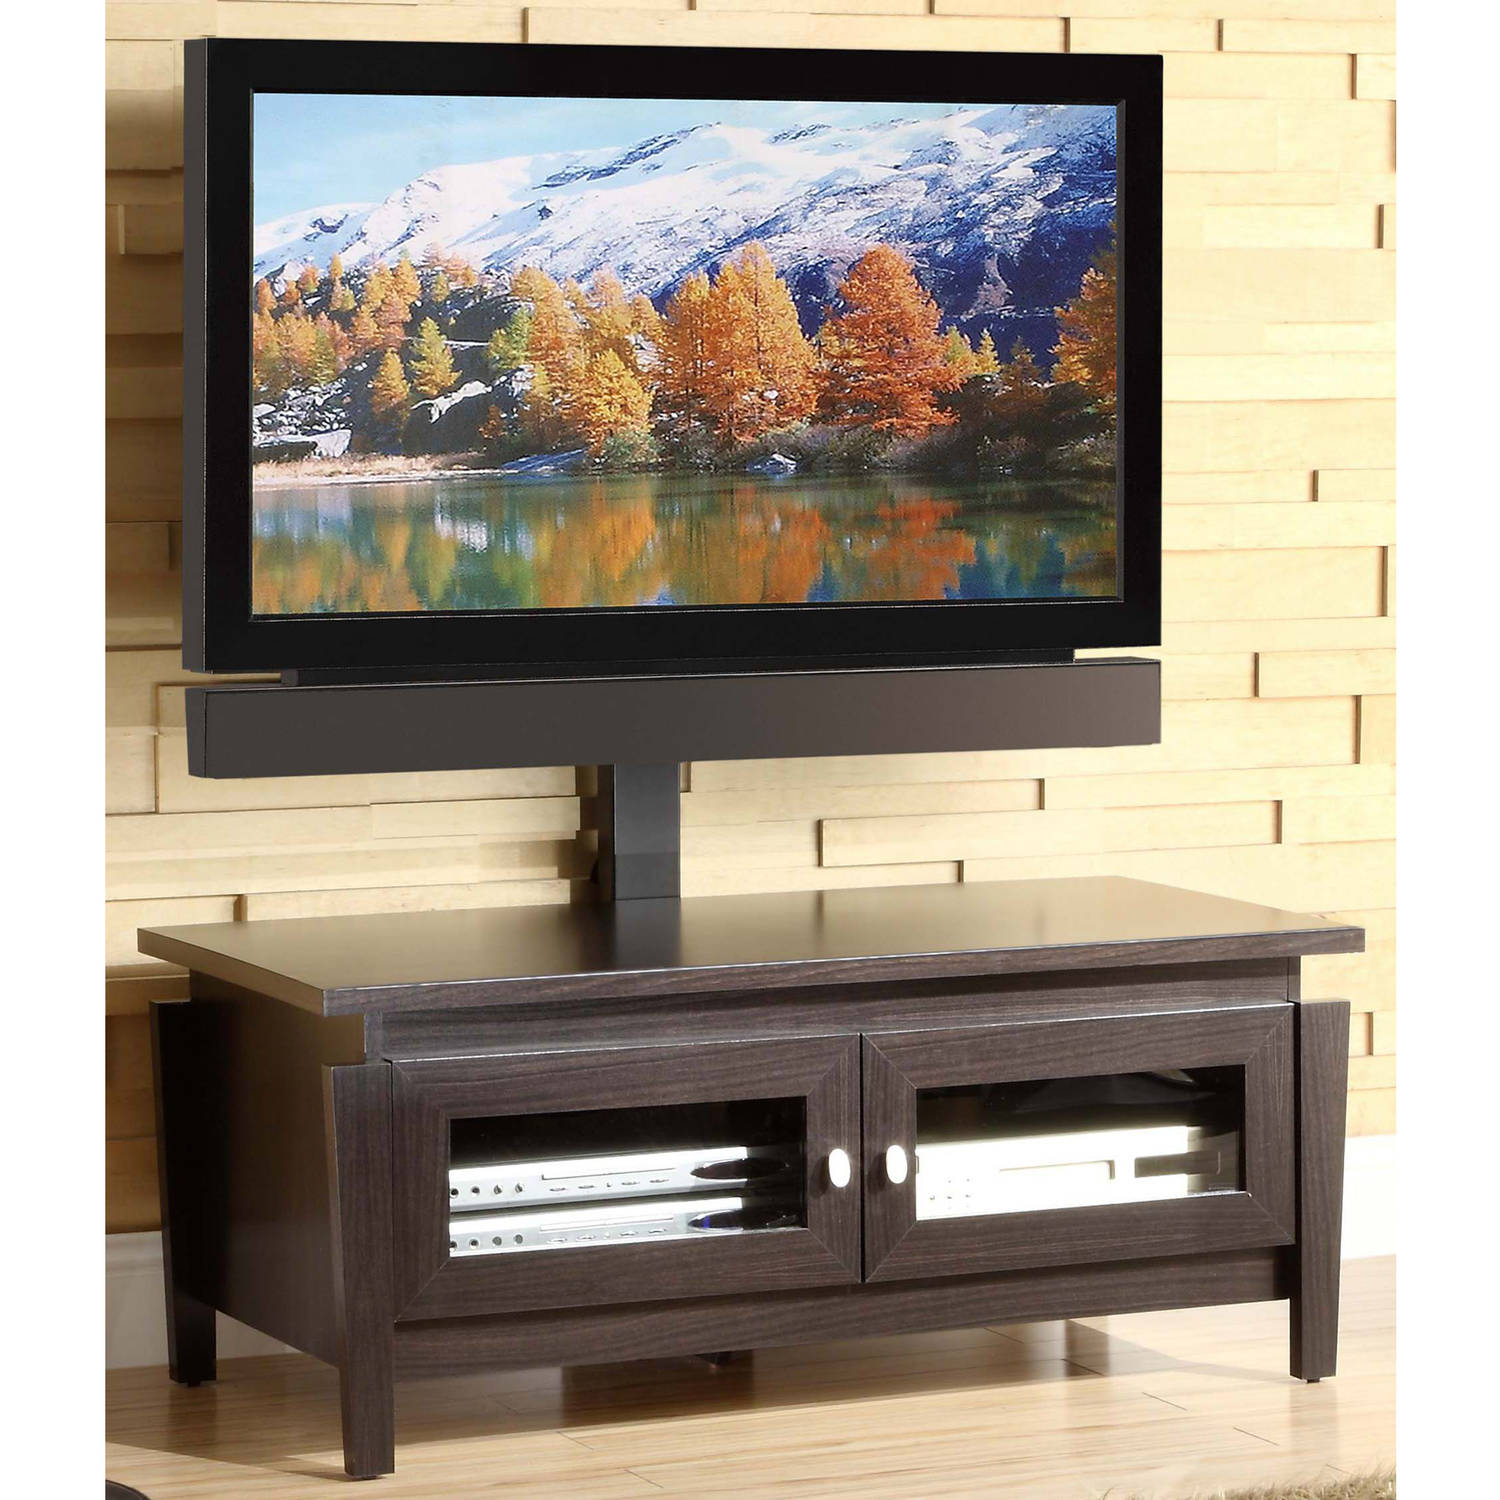 Table De Television Awesome Table De Television With Table De  # Table Basse Avec Tele